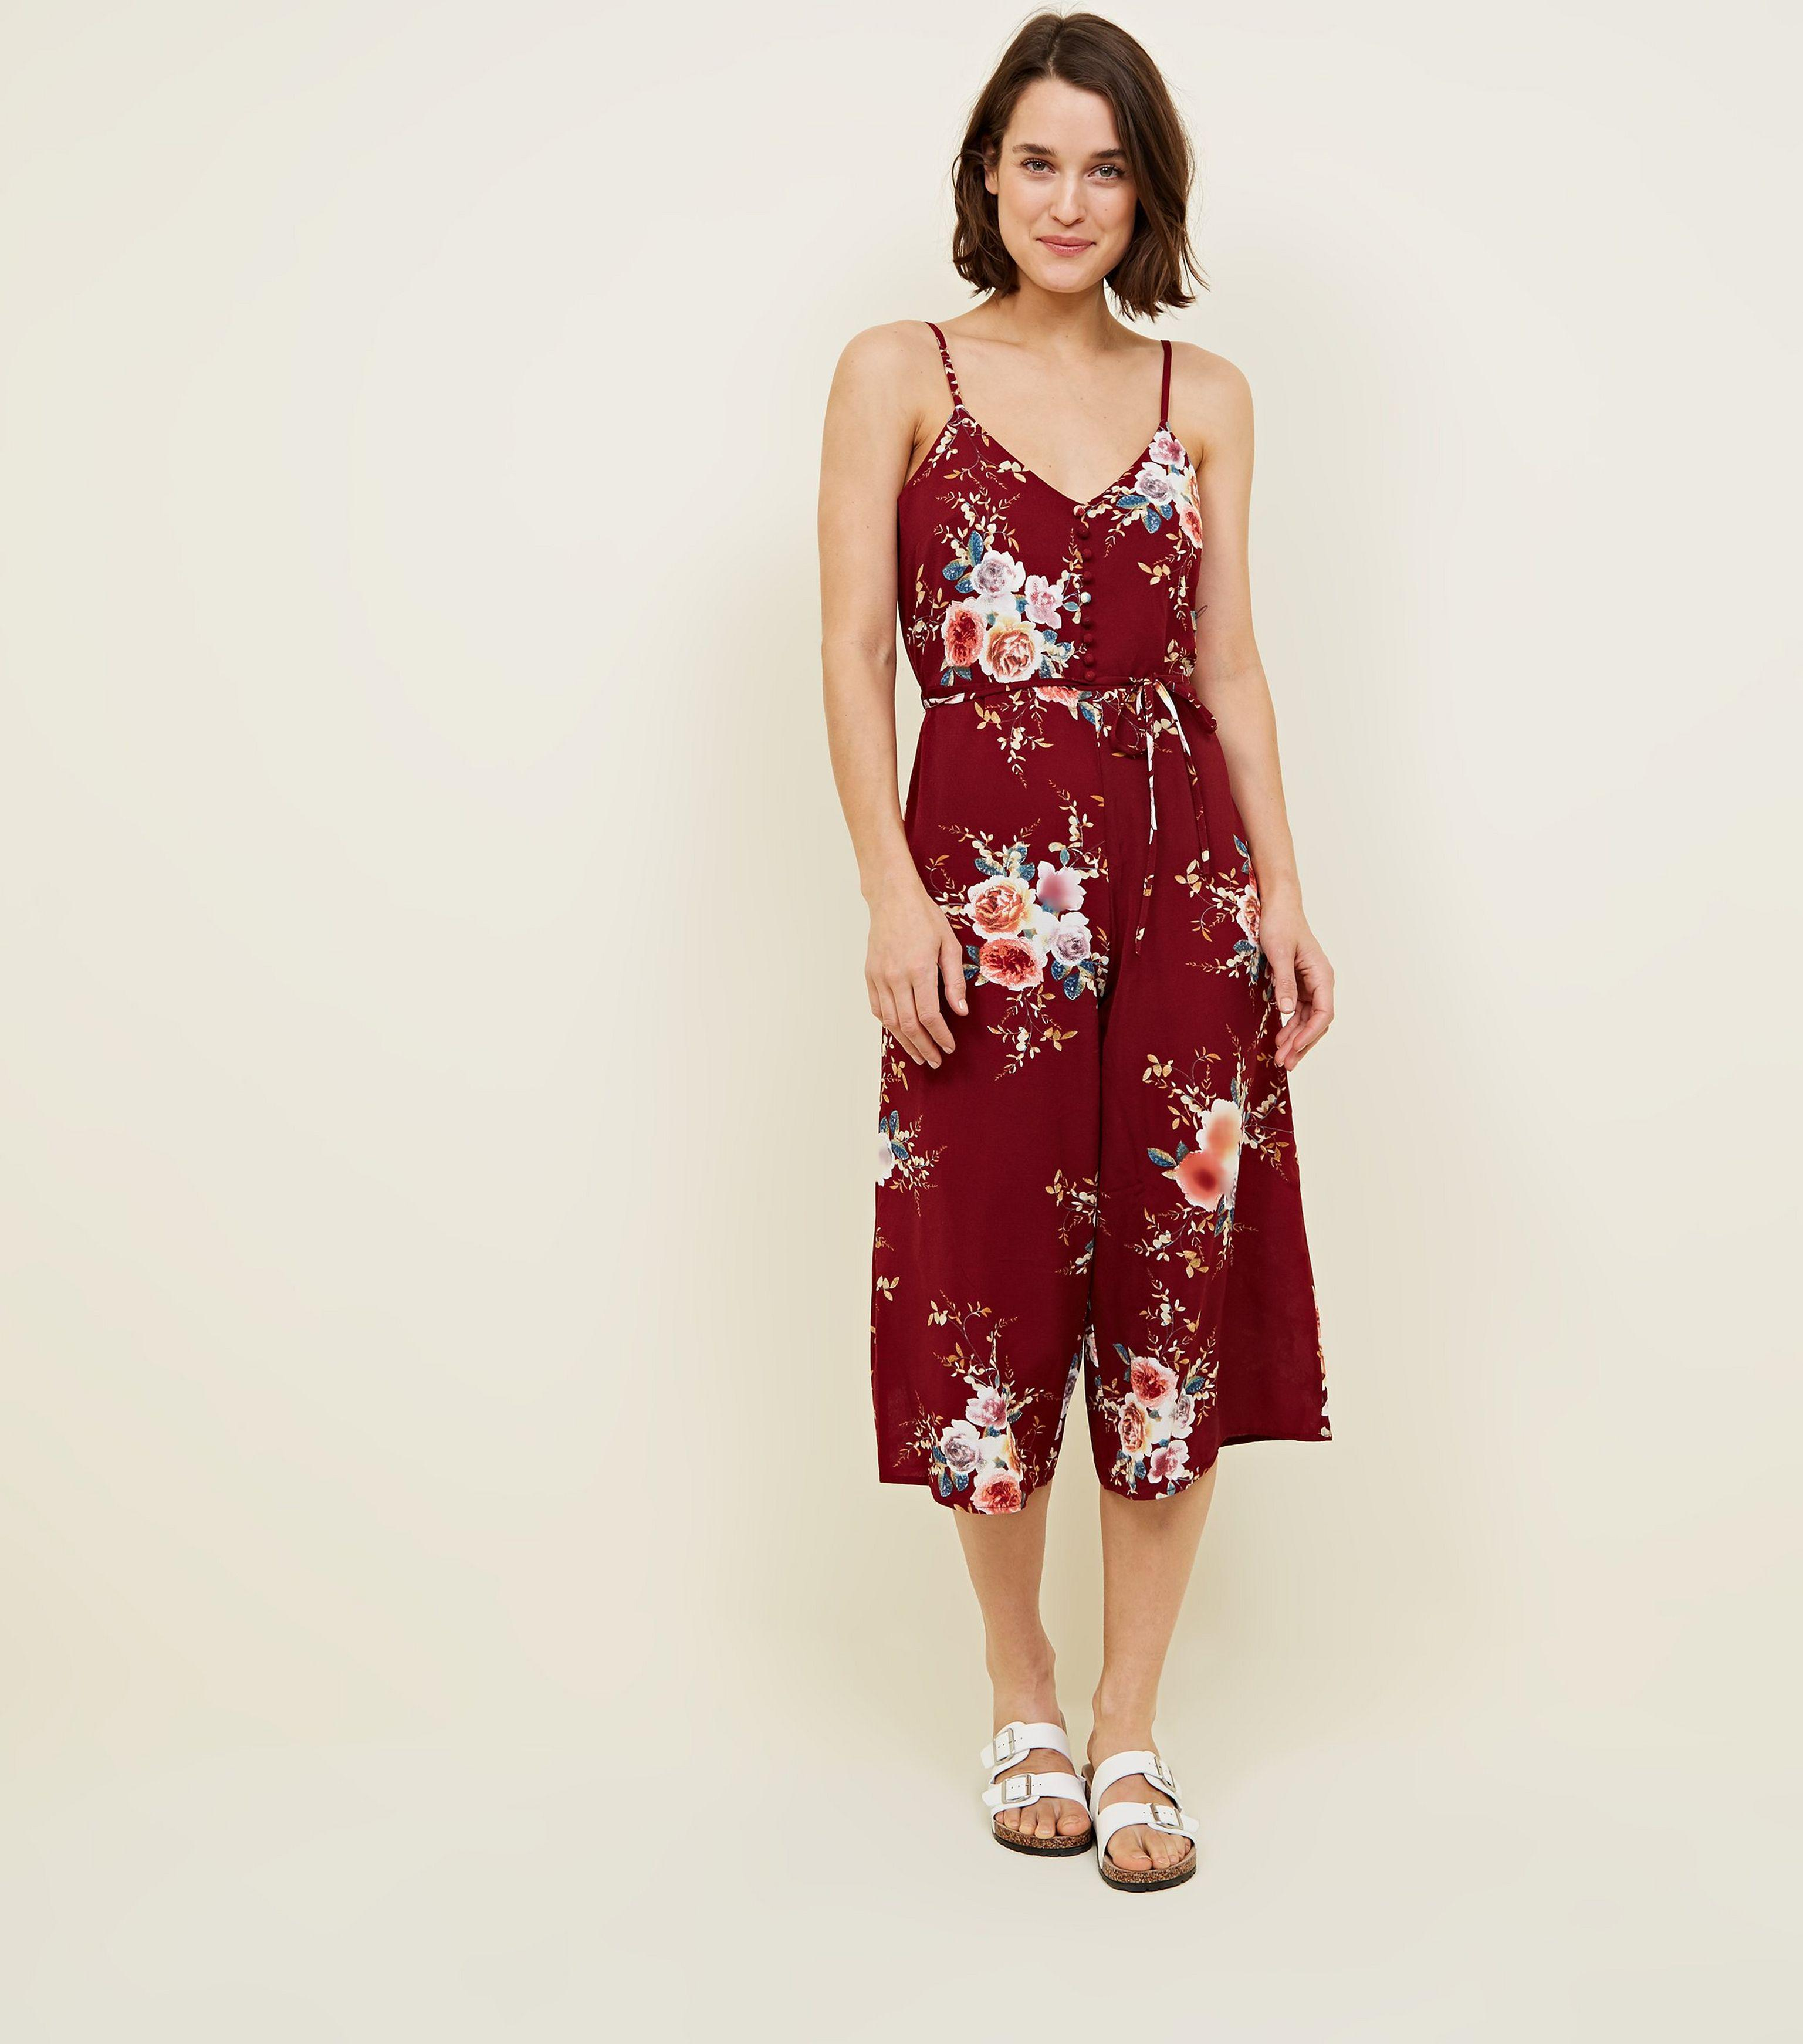 82d3a4b1049 New Look Burgundy Floral Culotte Jumpsuit in Red - Lyst